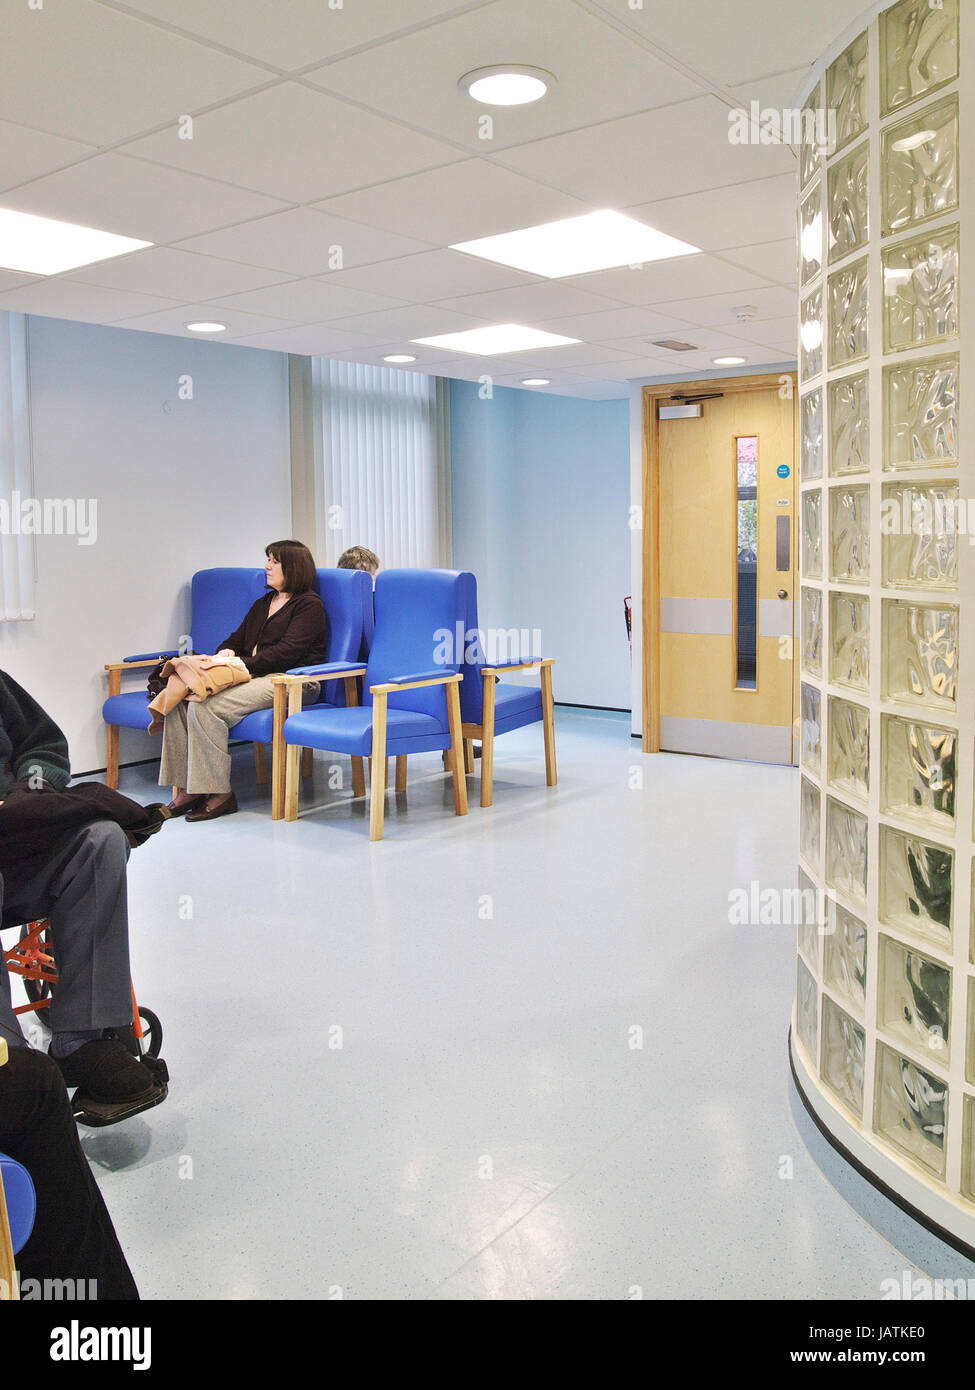 Waiting room in a large UK general hospital, showing patients and staff waiting for appointment - Stock Image